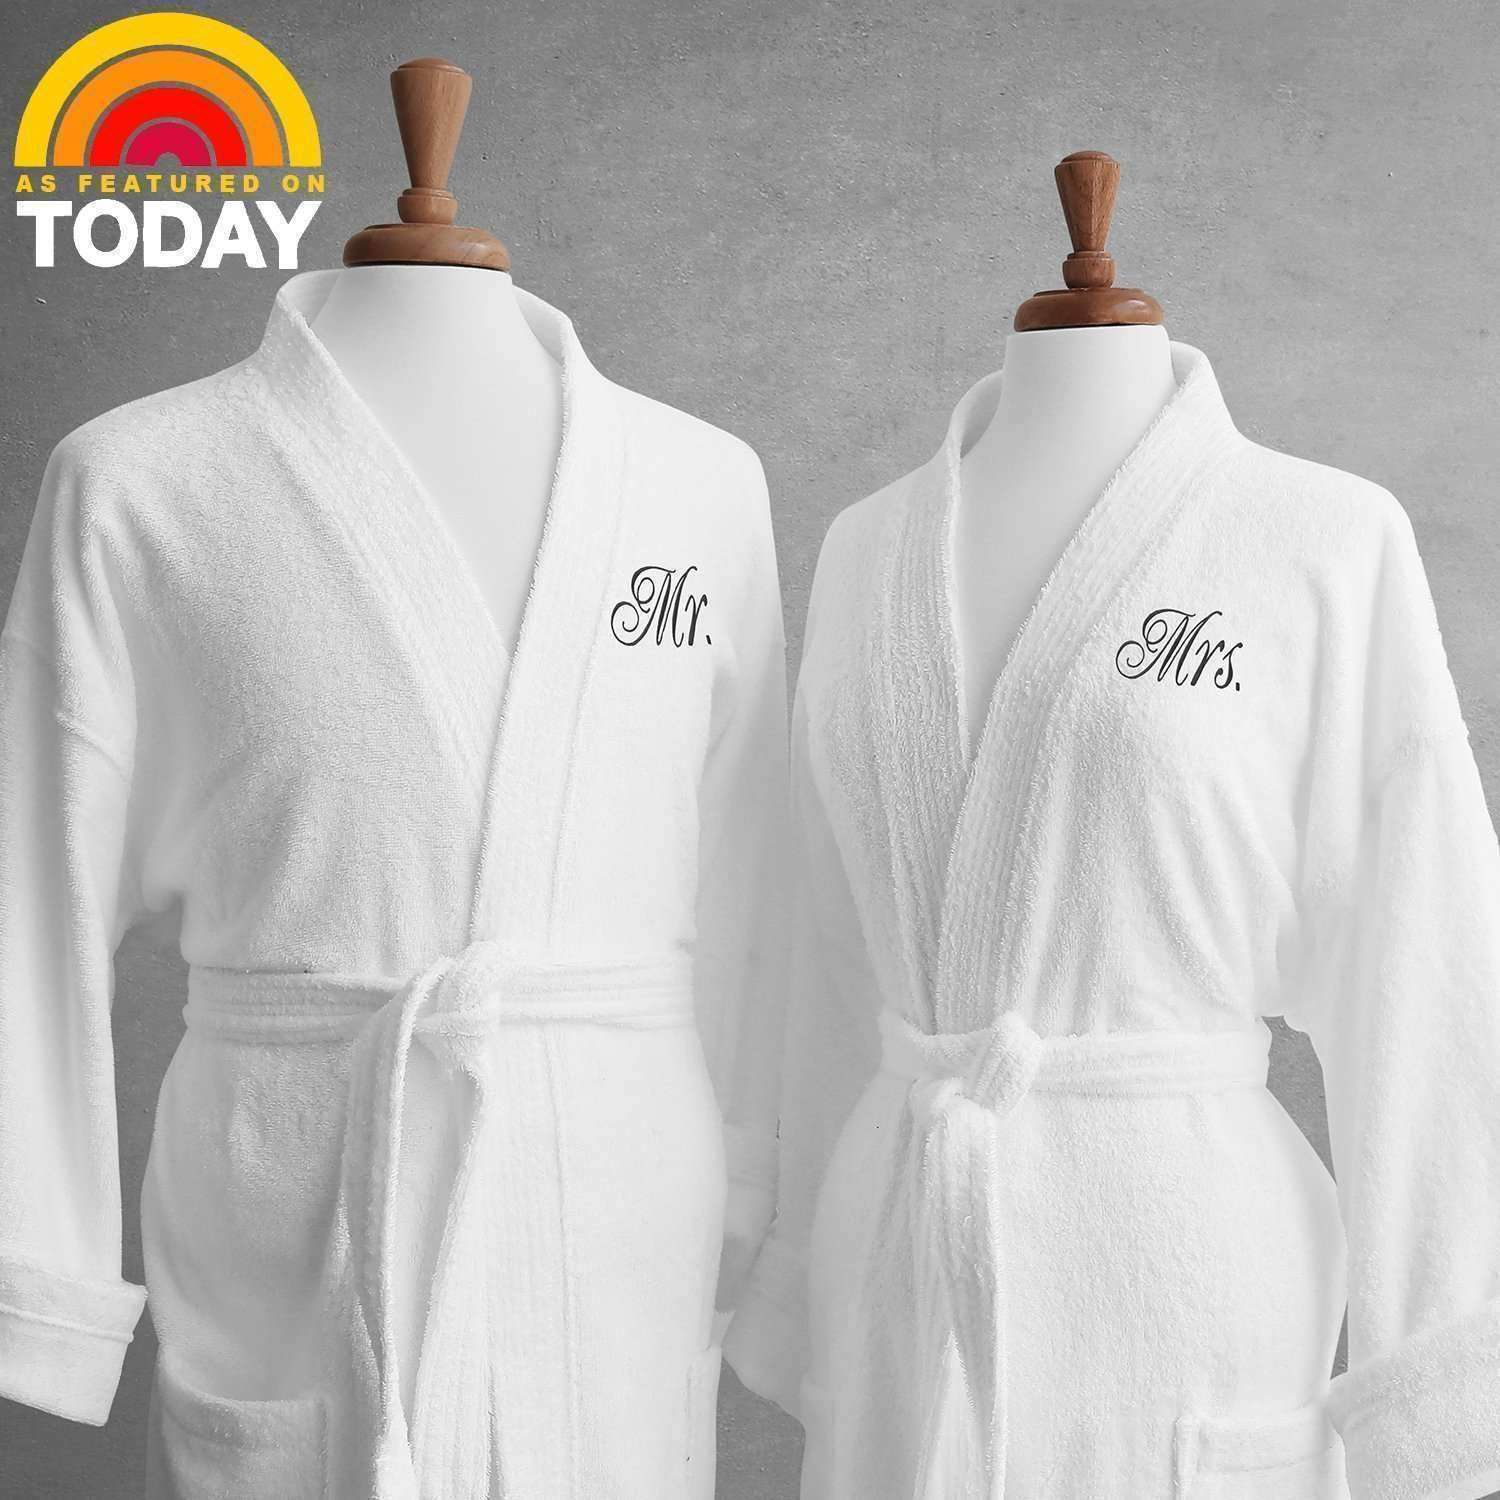 Lakeview Signature Egyptian Cotton Terry Spa Robes - Luxor Linens c53f0822f